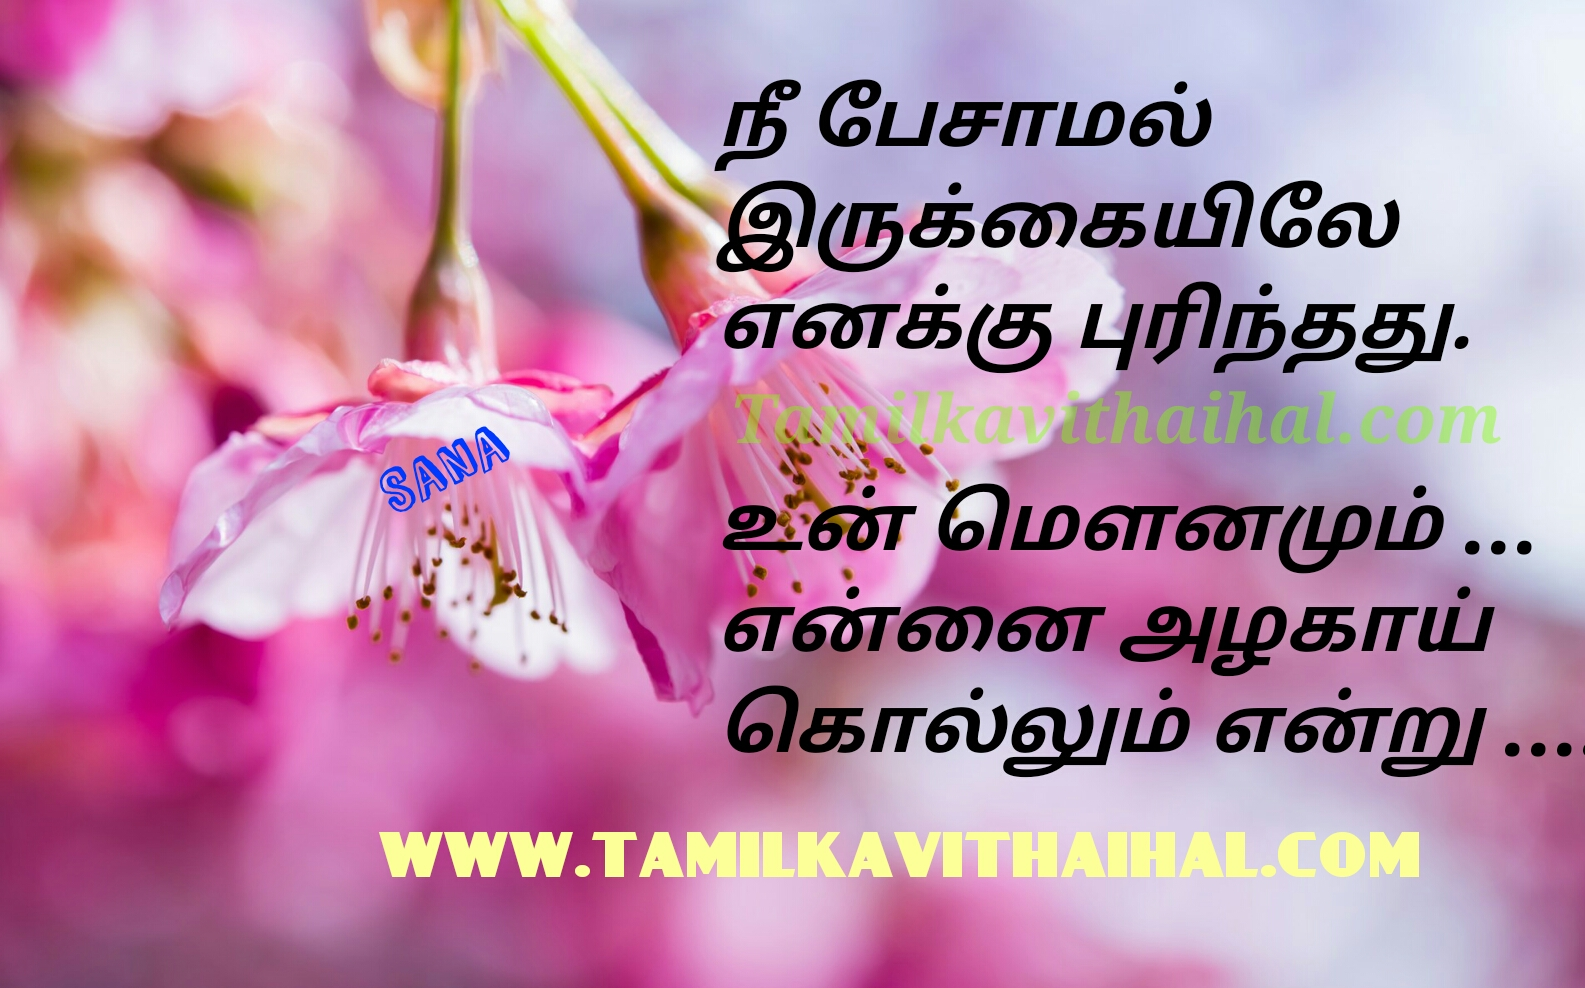 Download Free Tamil Love Feeling Kavithai Images Pictures